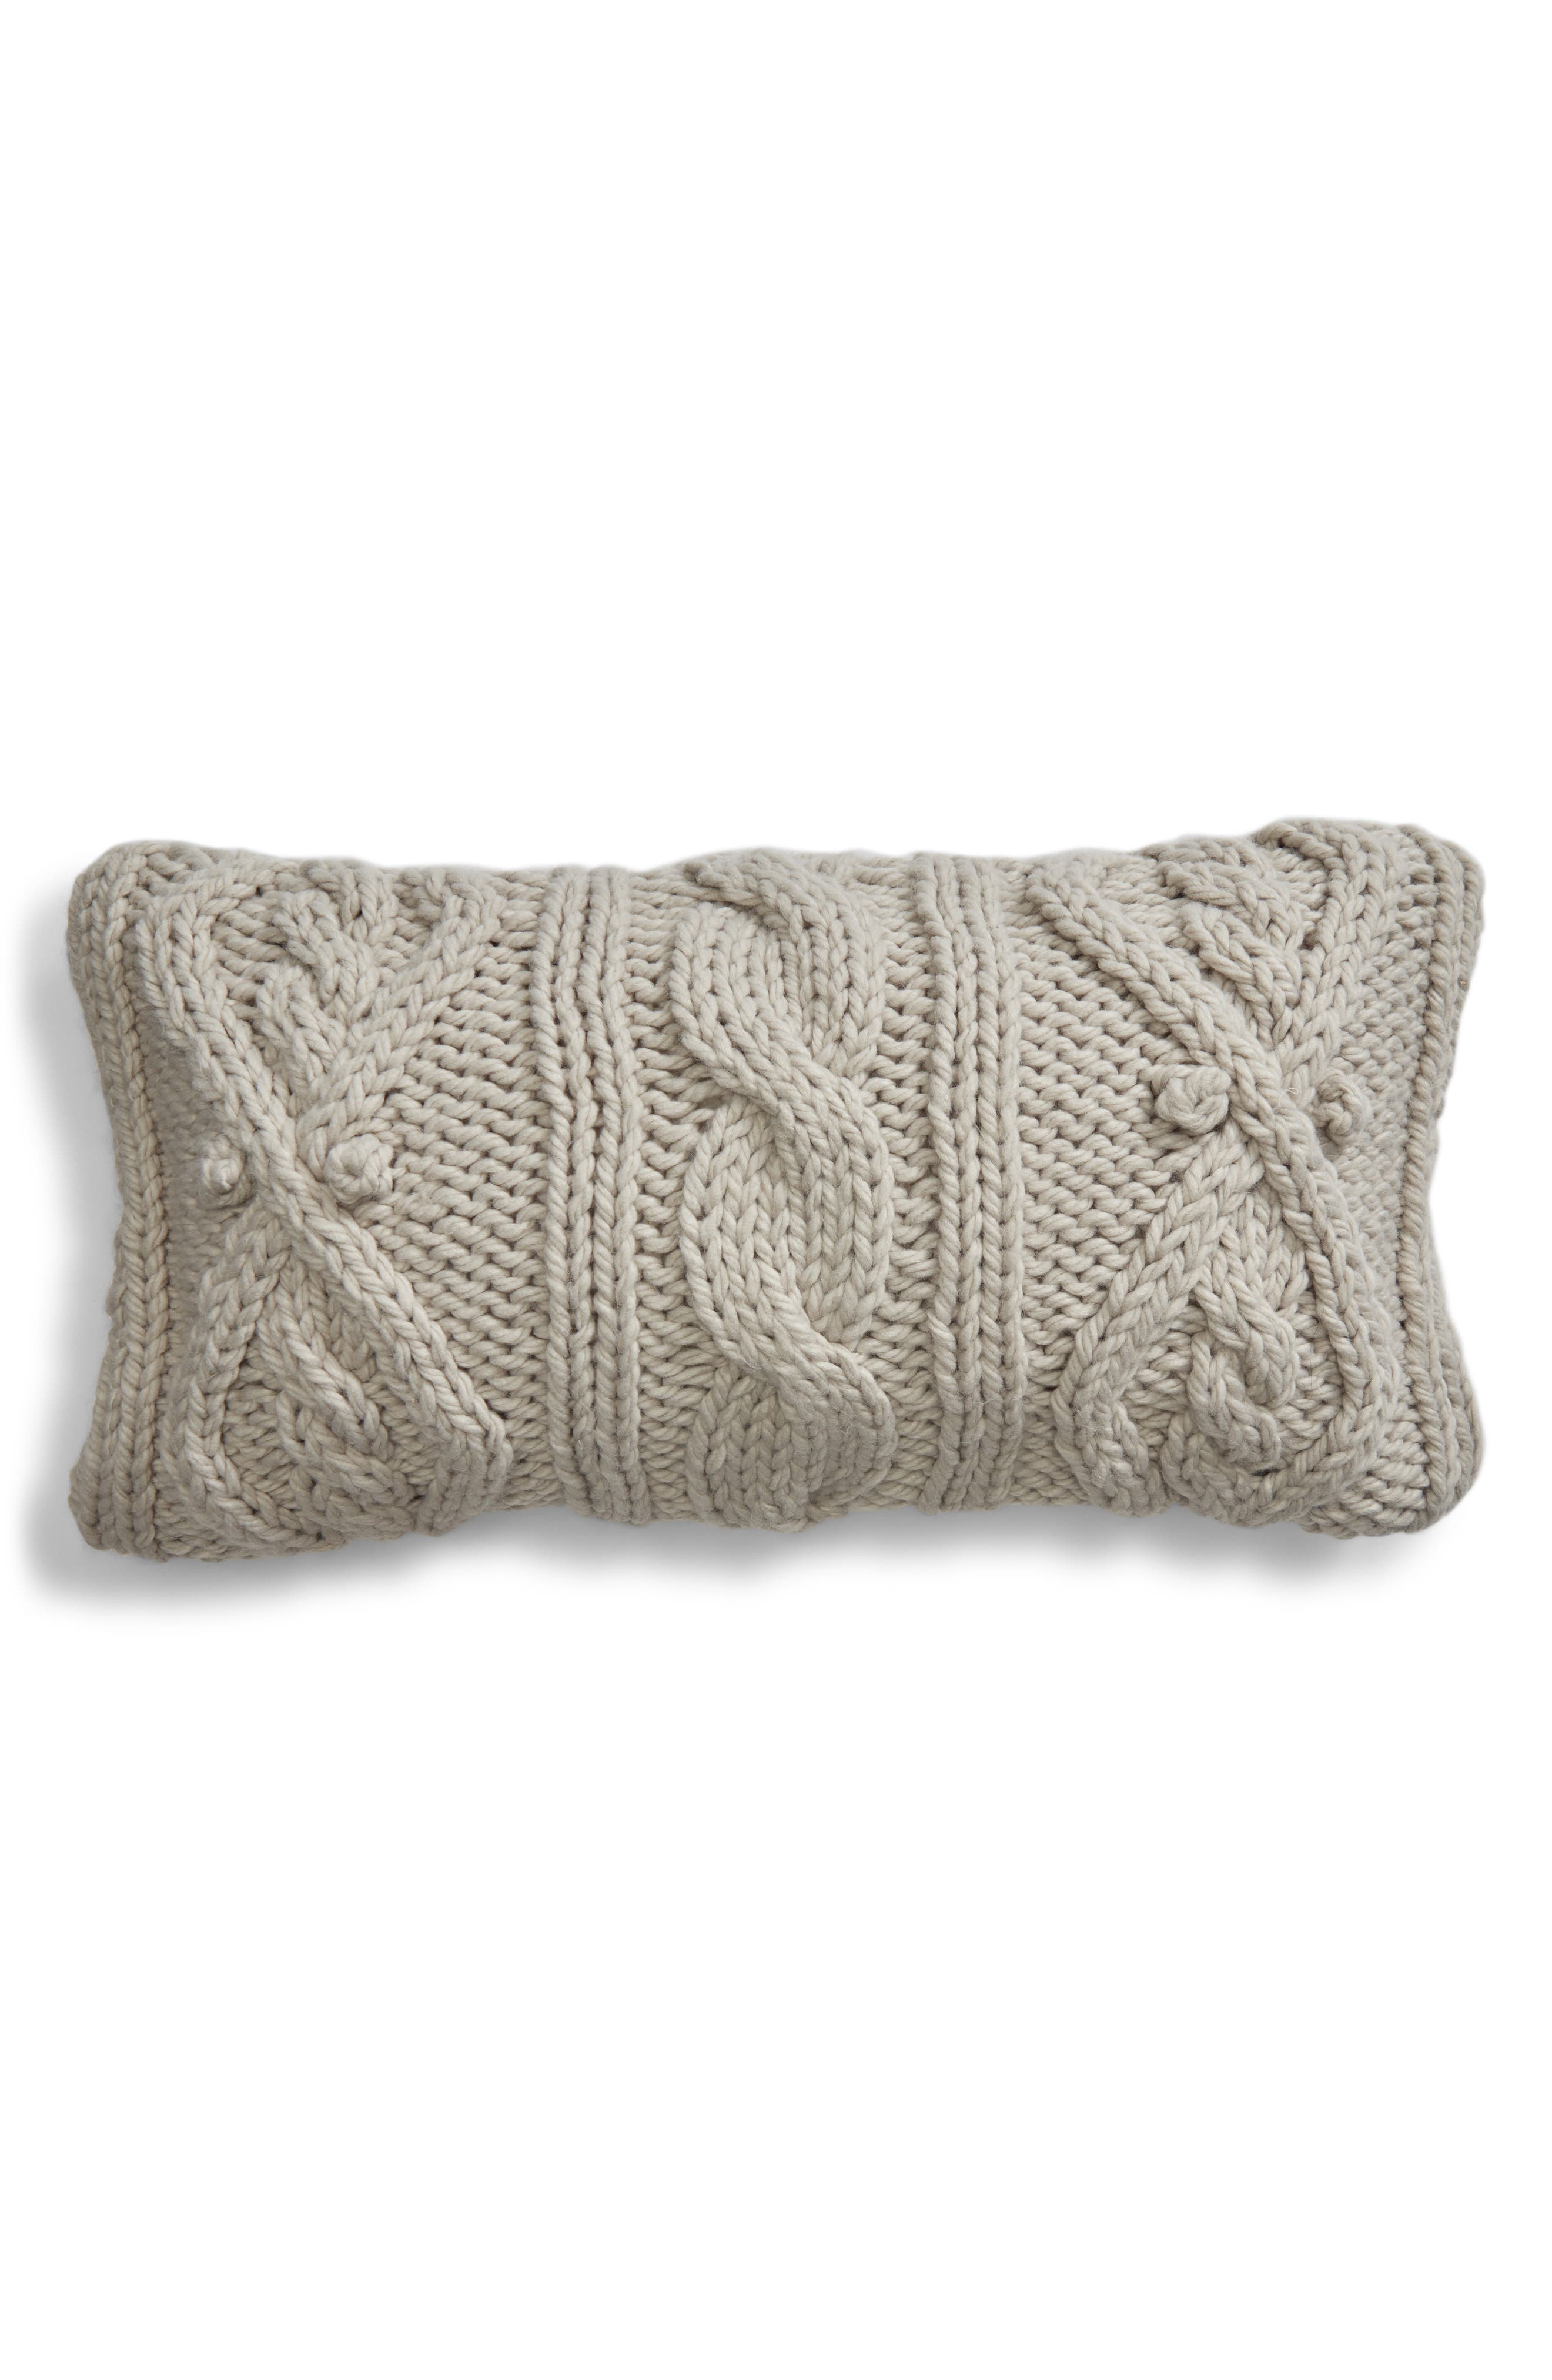 Chunky Cable Knit Accent Pillow,                         Main,                         color, GREY VAPOR